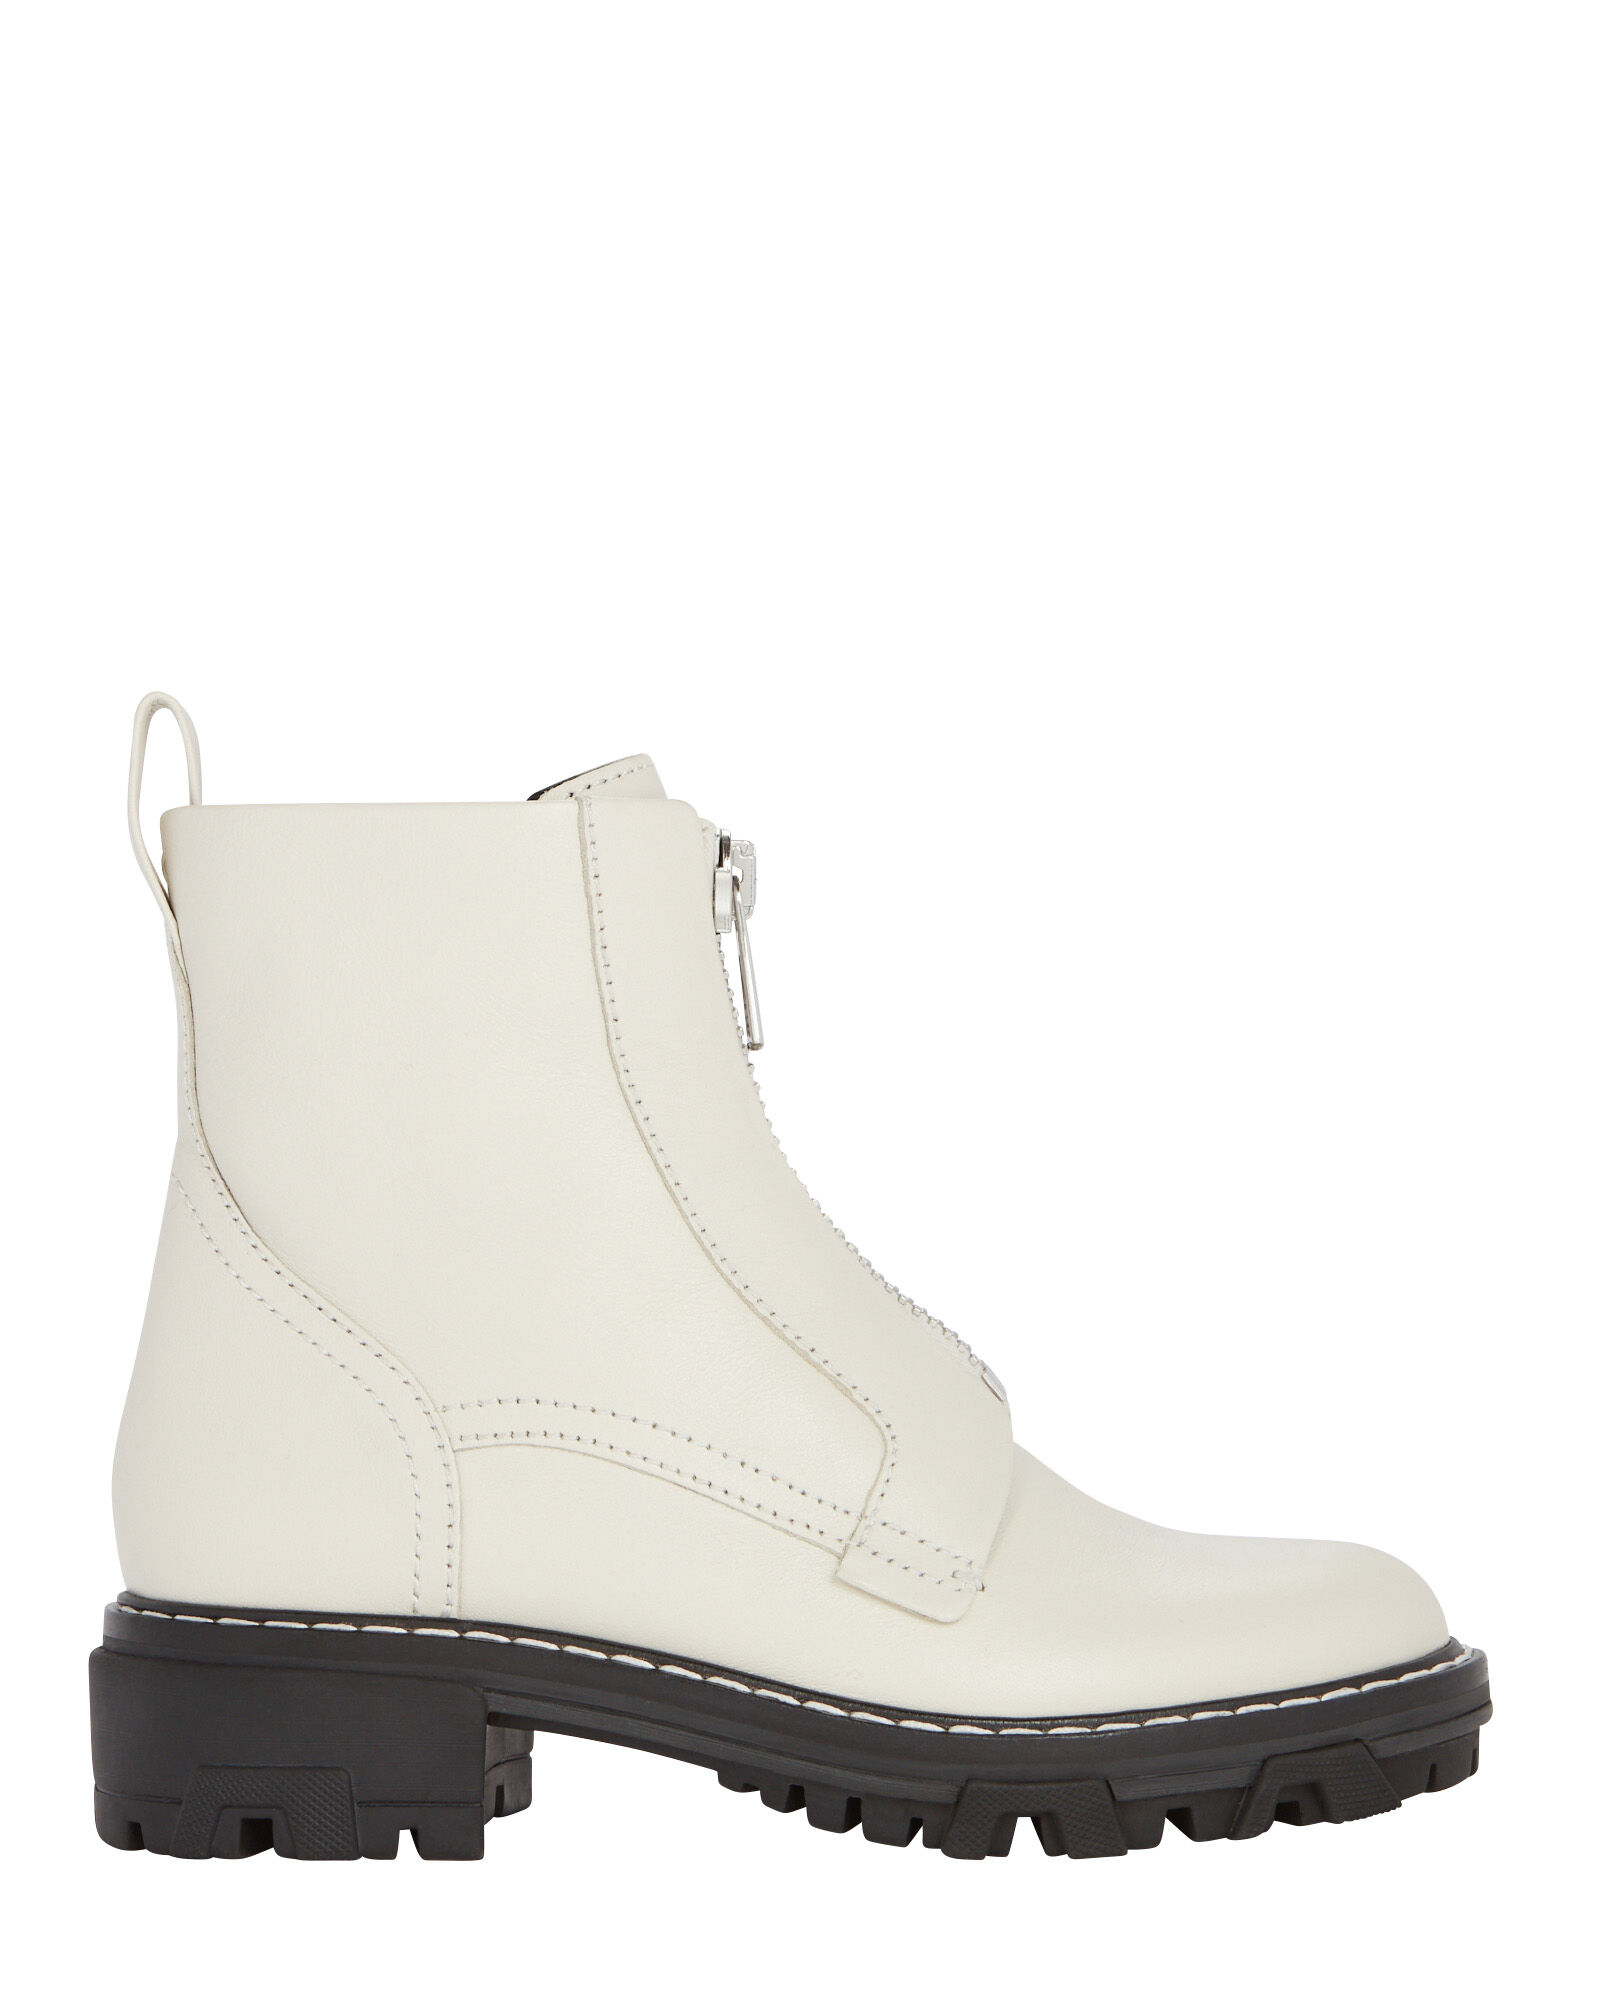 Shiloh Leather Combat Boots, IVORY, hi-res